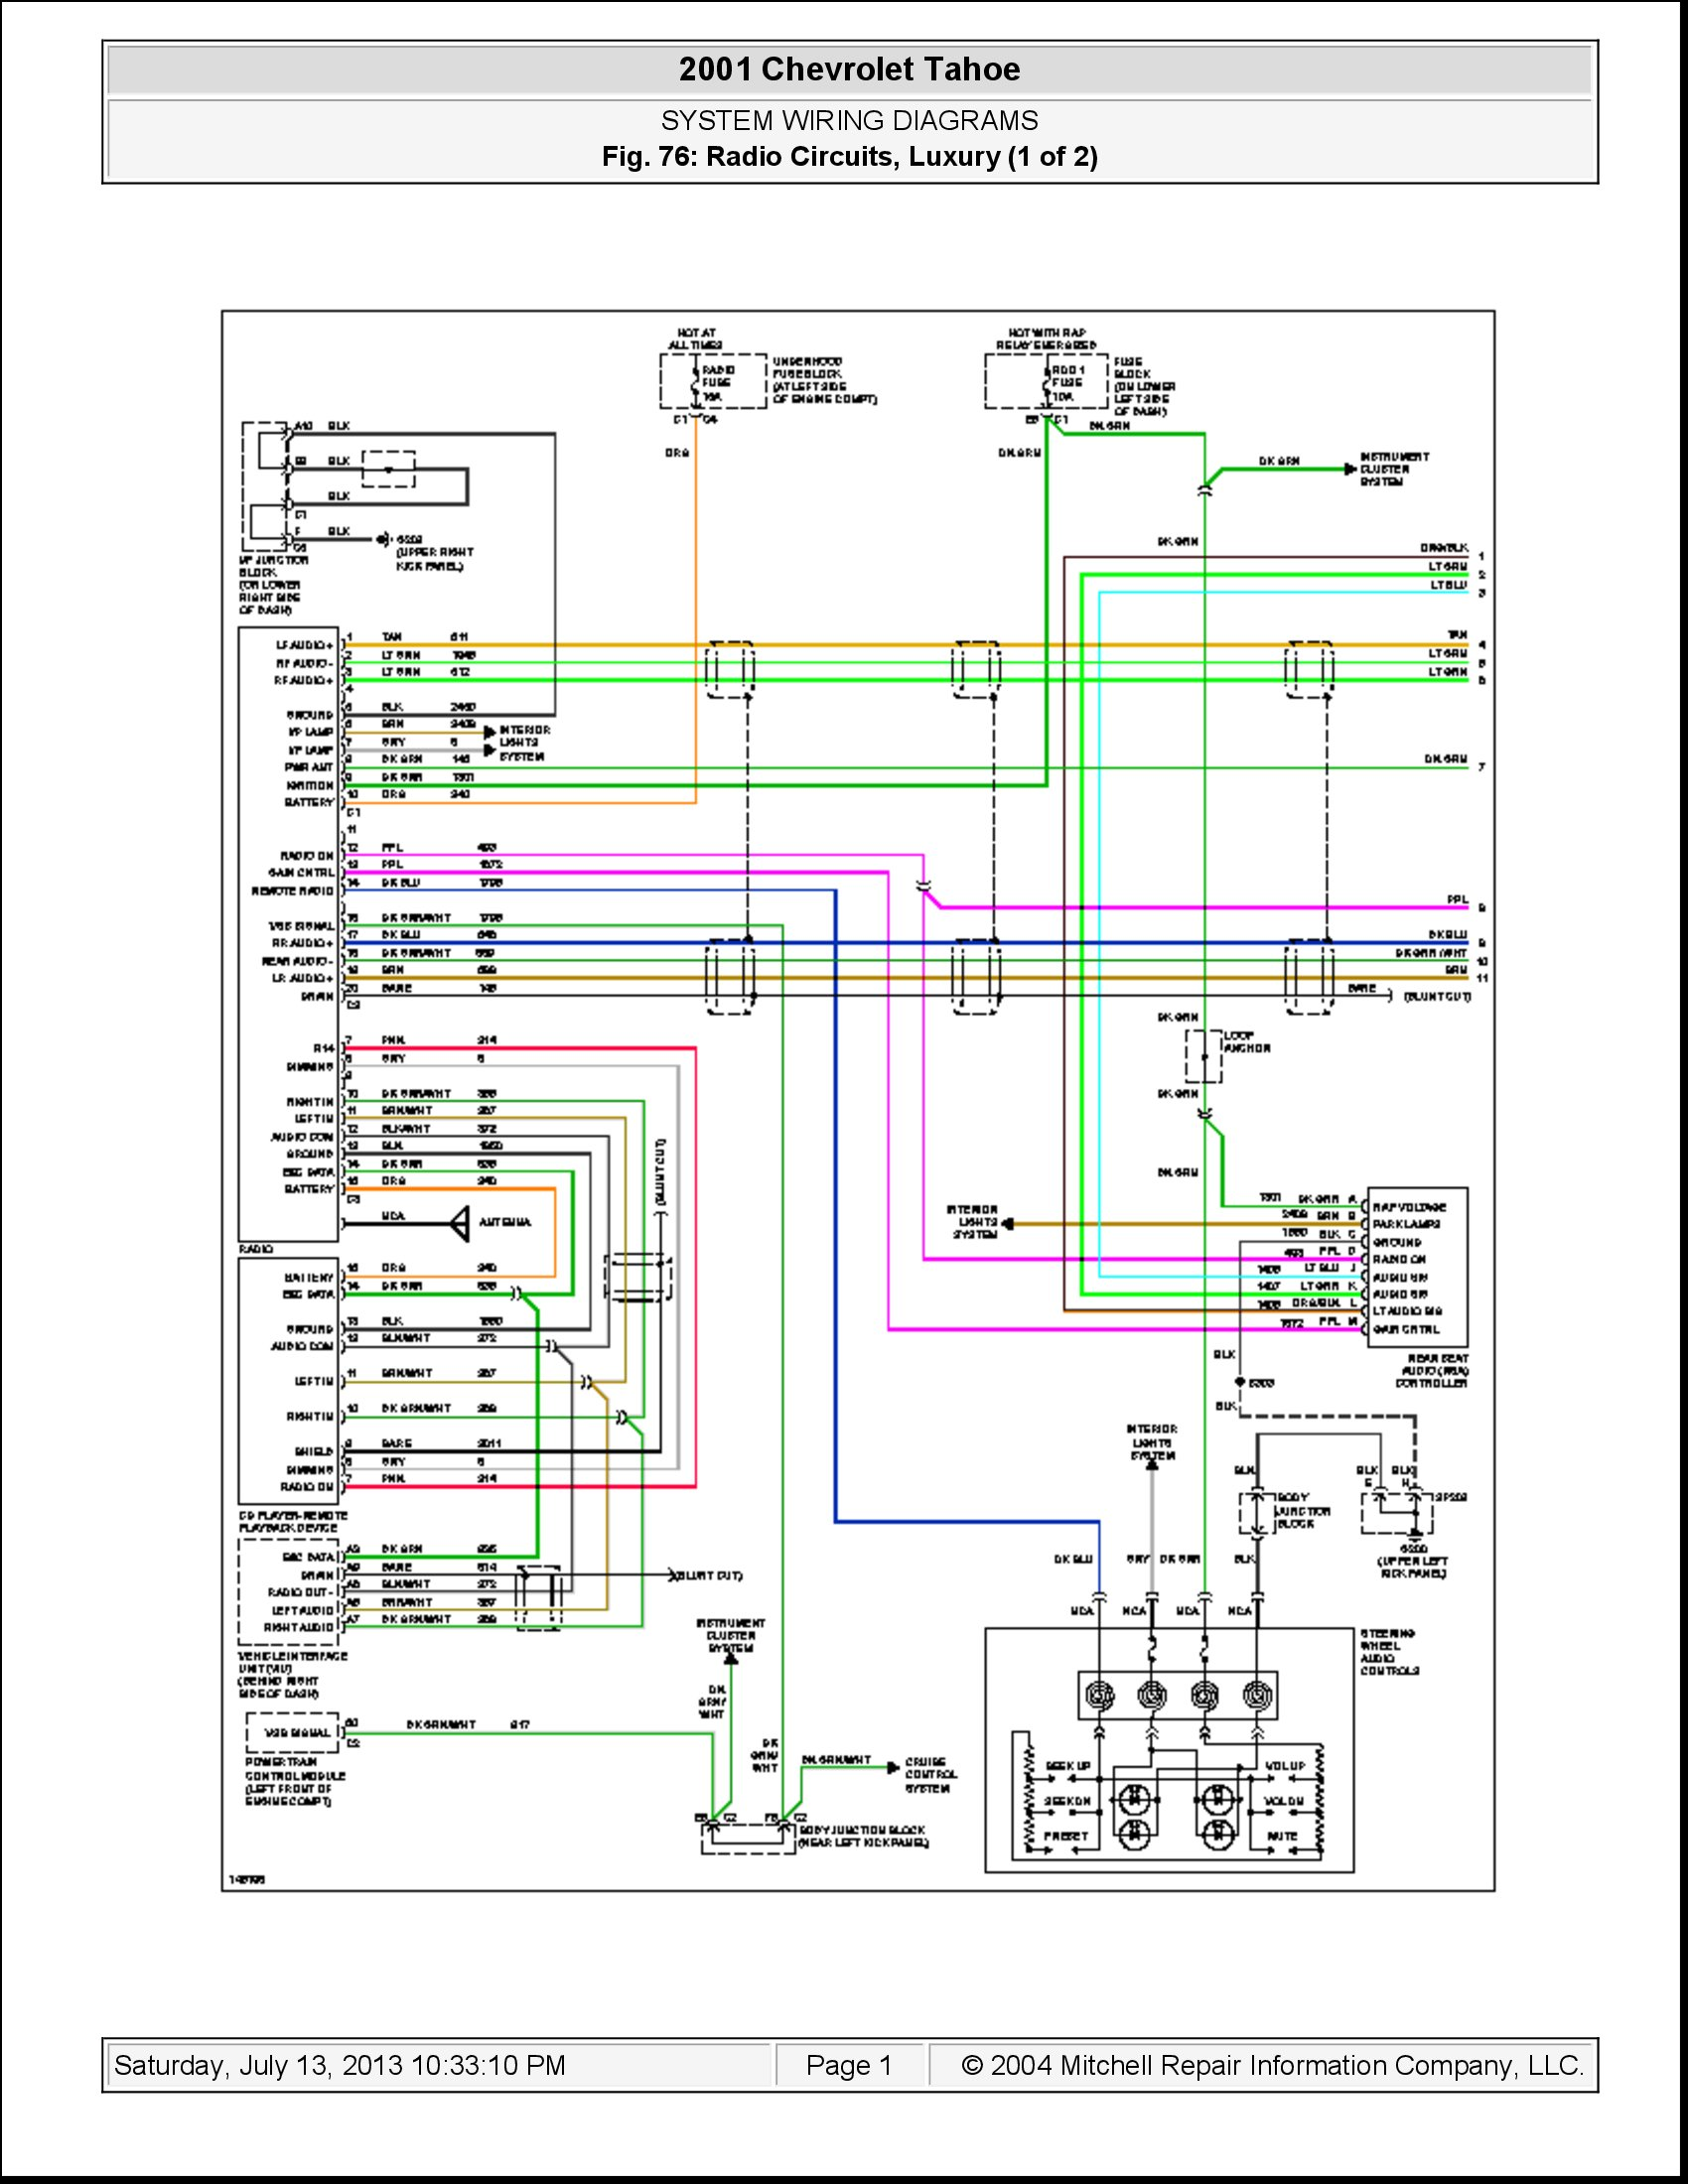 2001 chevy tahoe wiring diagram - wiring diagram log belt-road -  belt-road.superpolobio.it  superpolobio.it